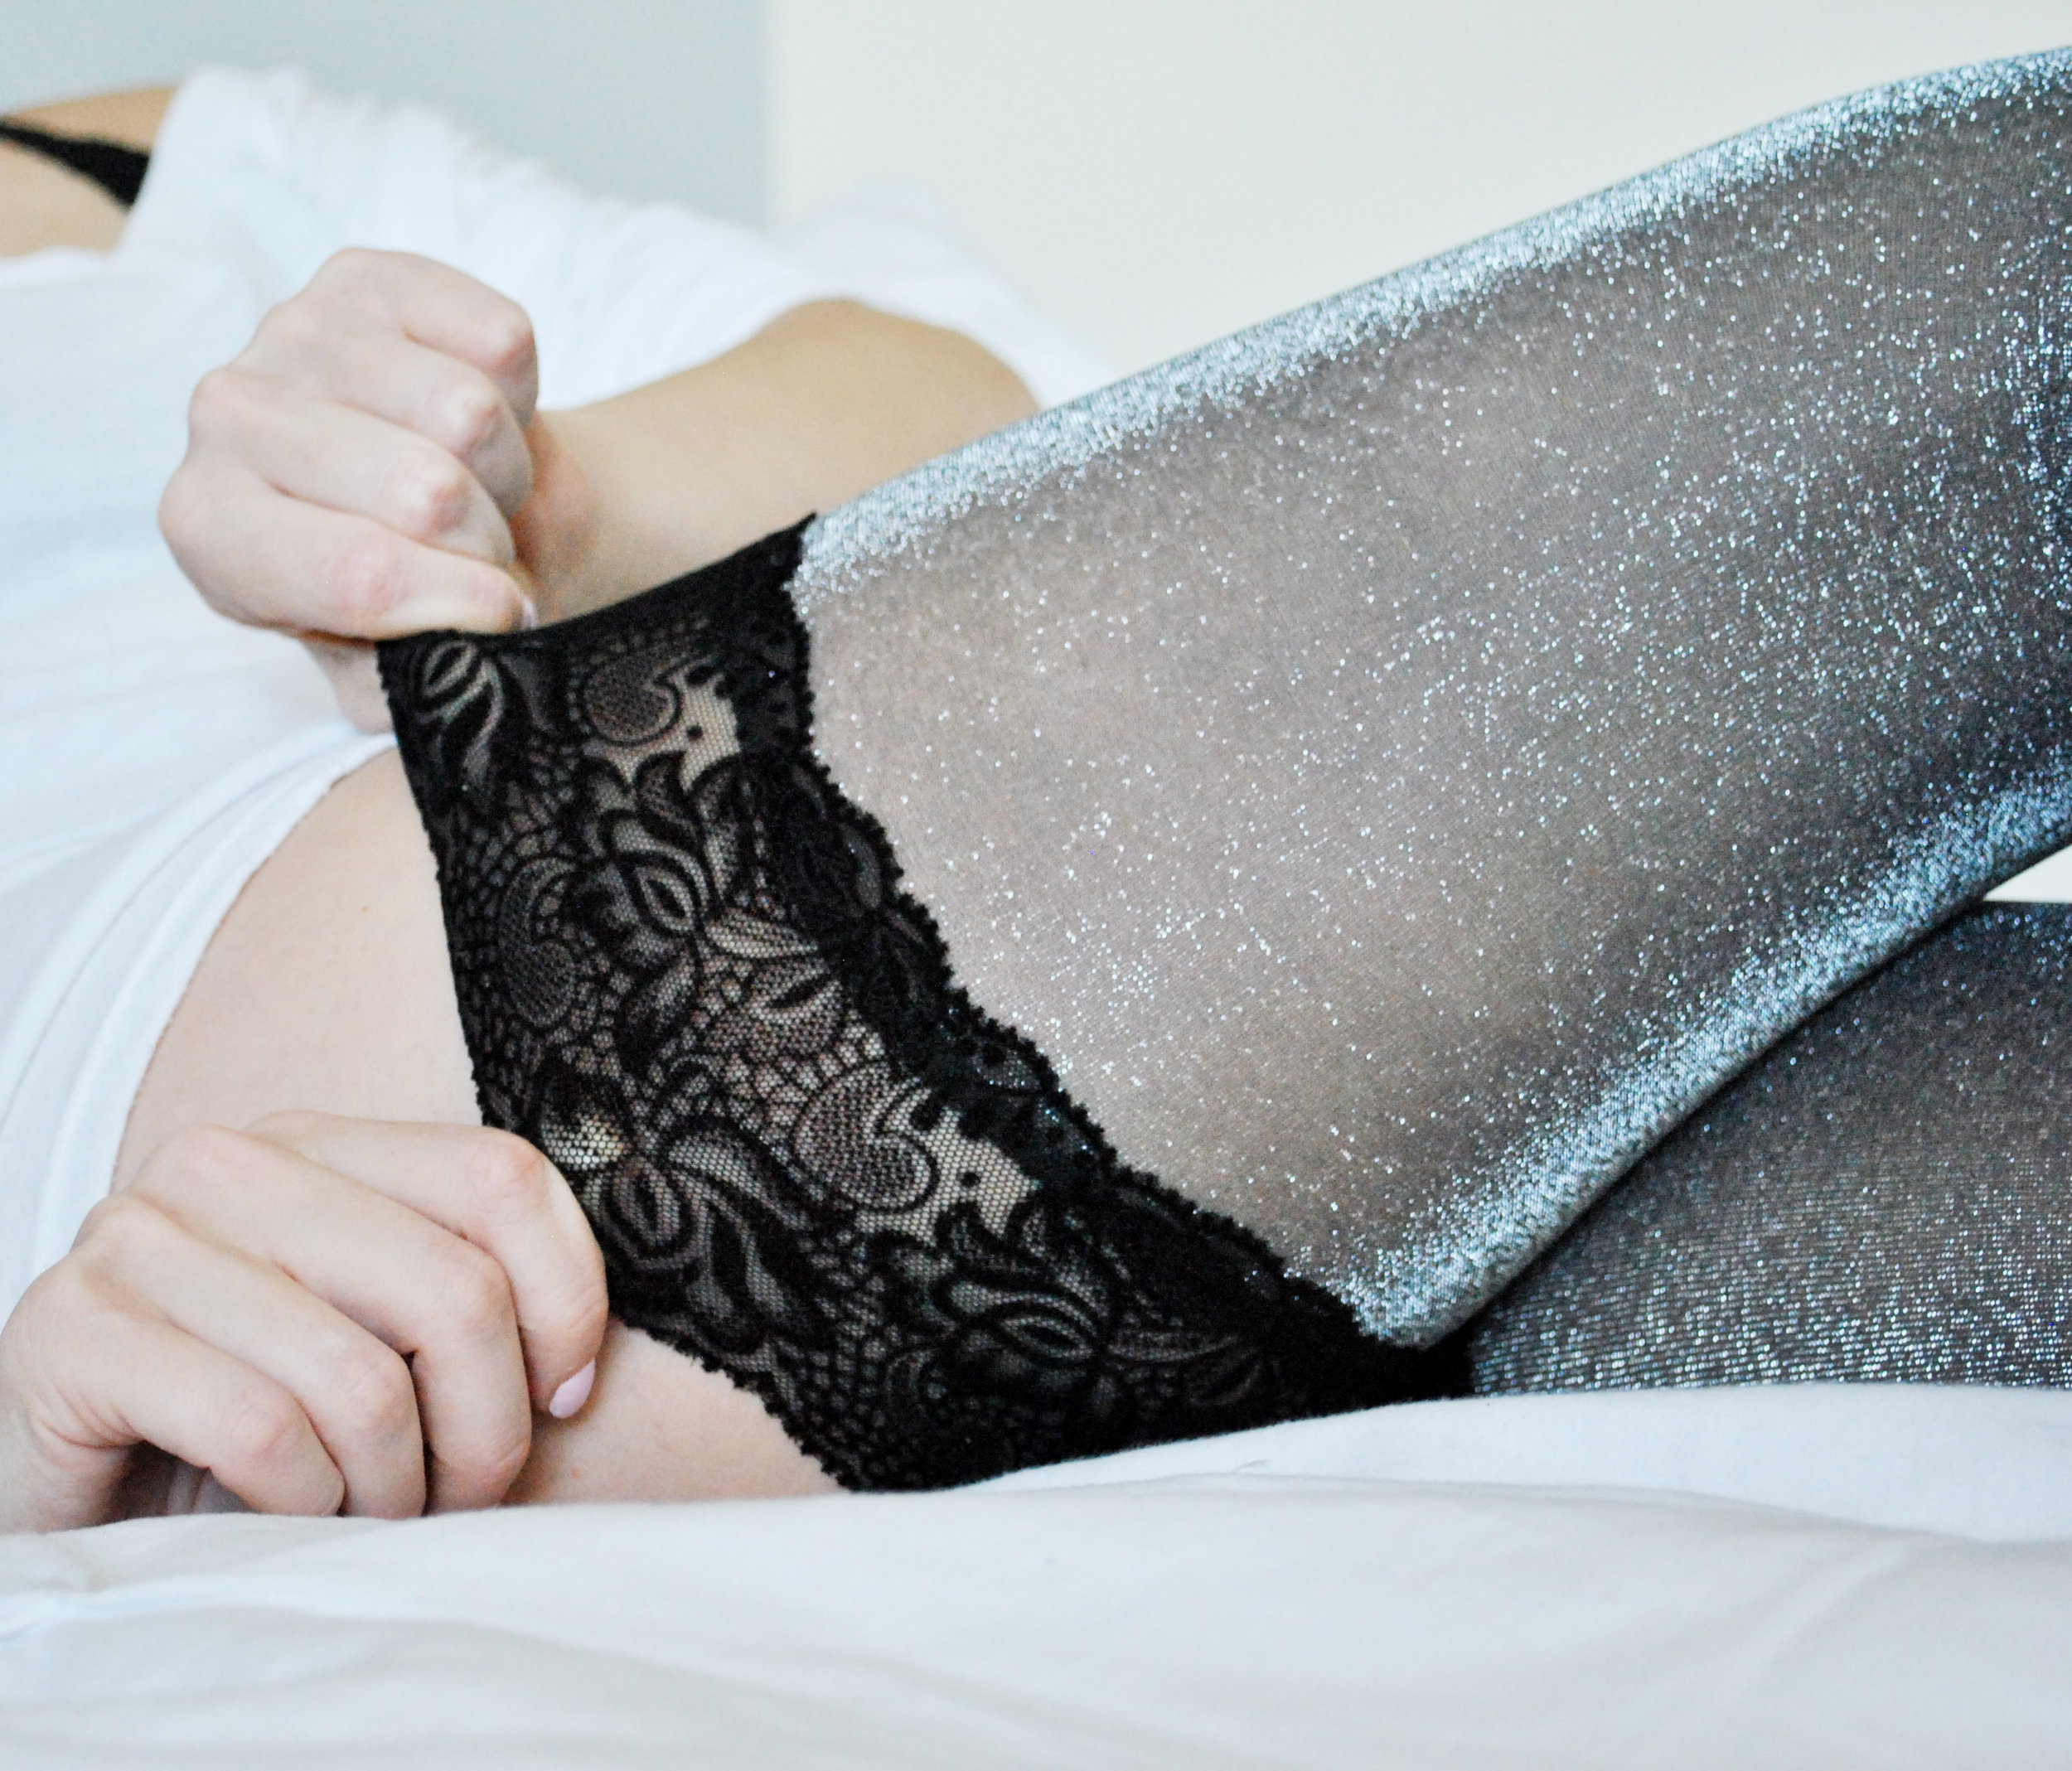 thoughtfulwish | vienne milano, stockings, thigh highs, free people, victoria secret, fashion blogger, lounge wear